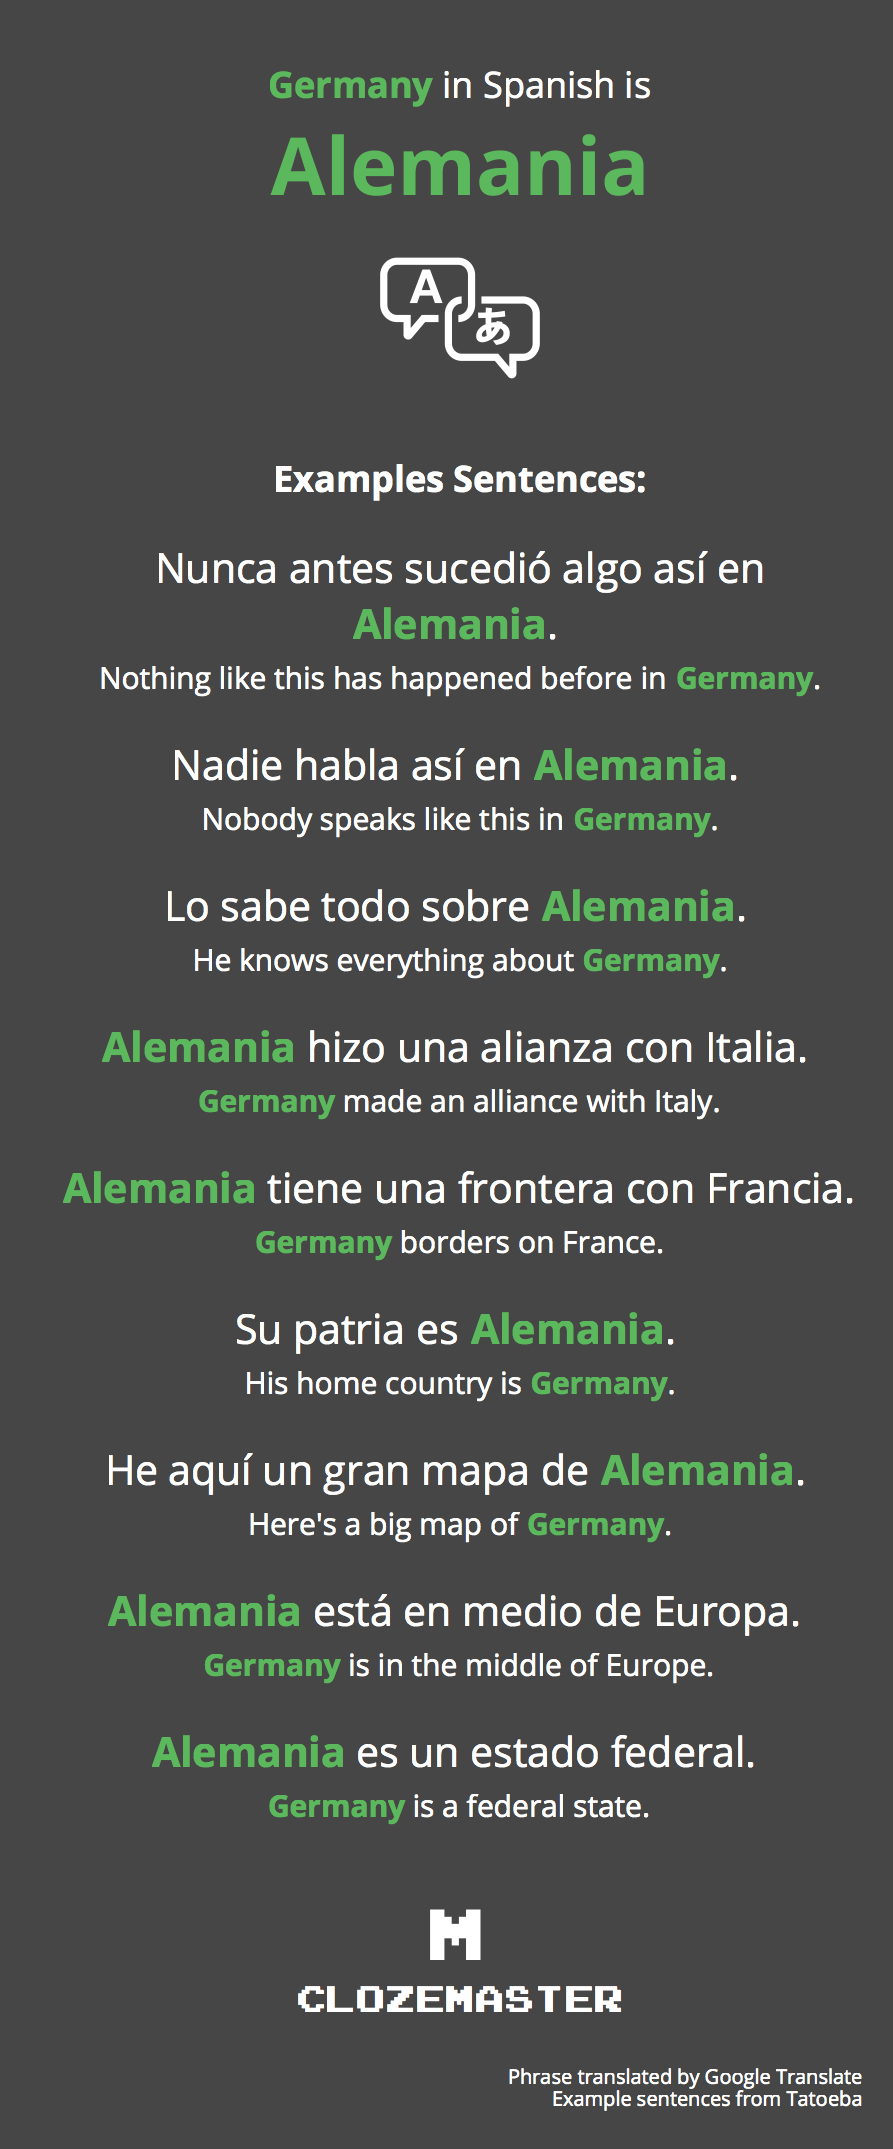 How to Say Germany in Spanish - Clozemaster